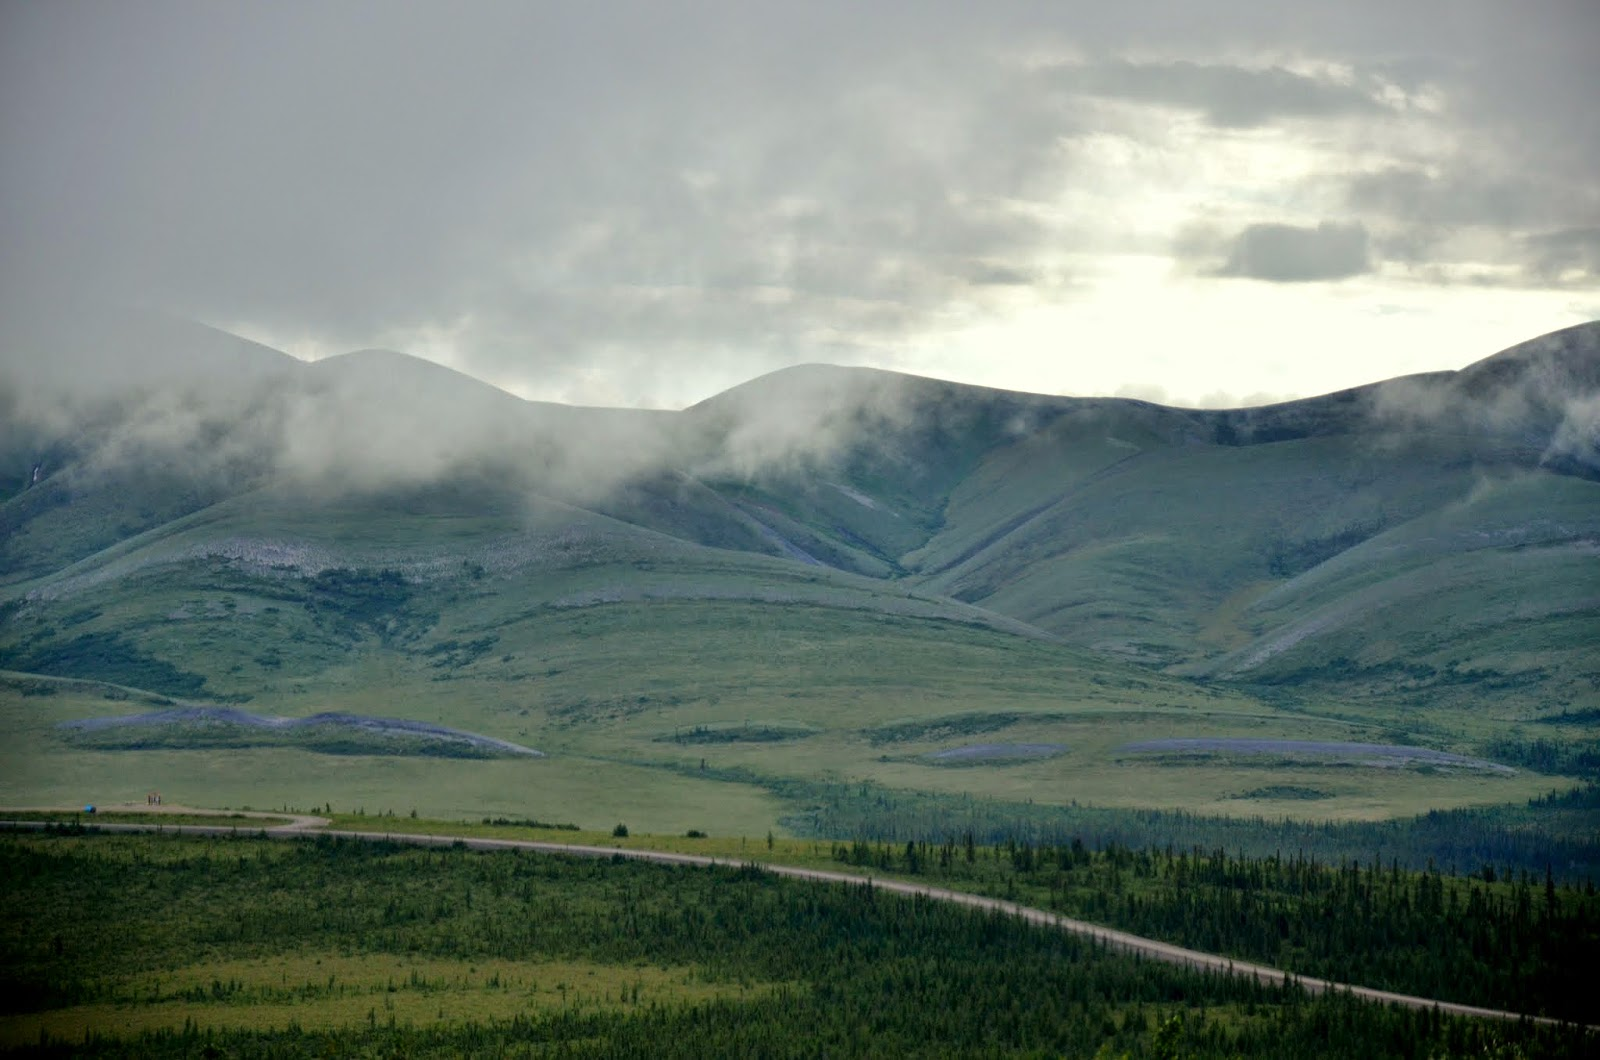 Landscape where 169,000 porcupine caribou herd winters.